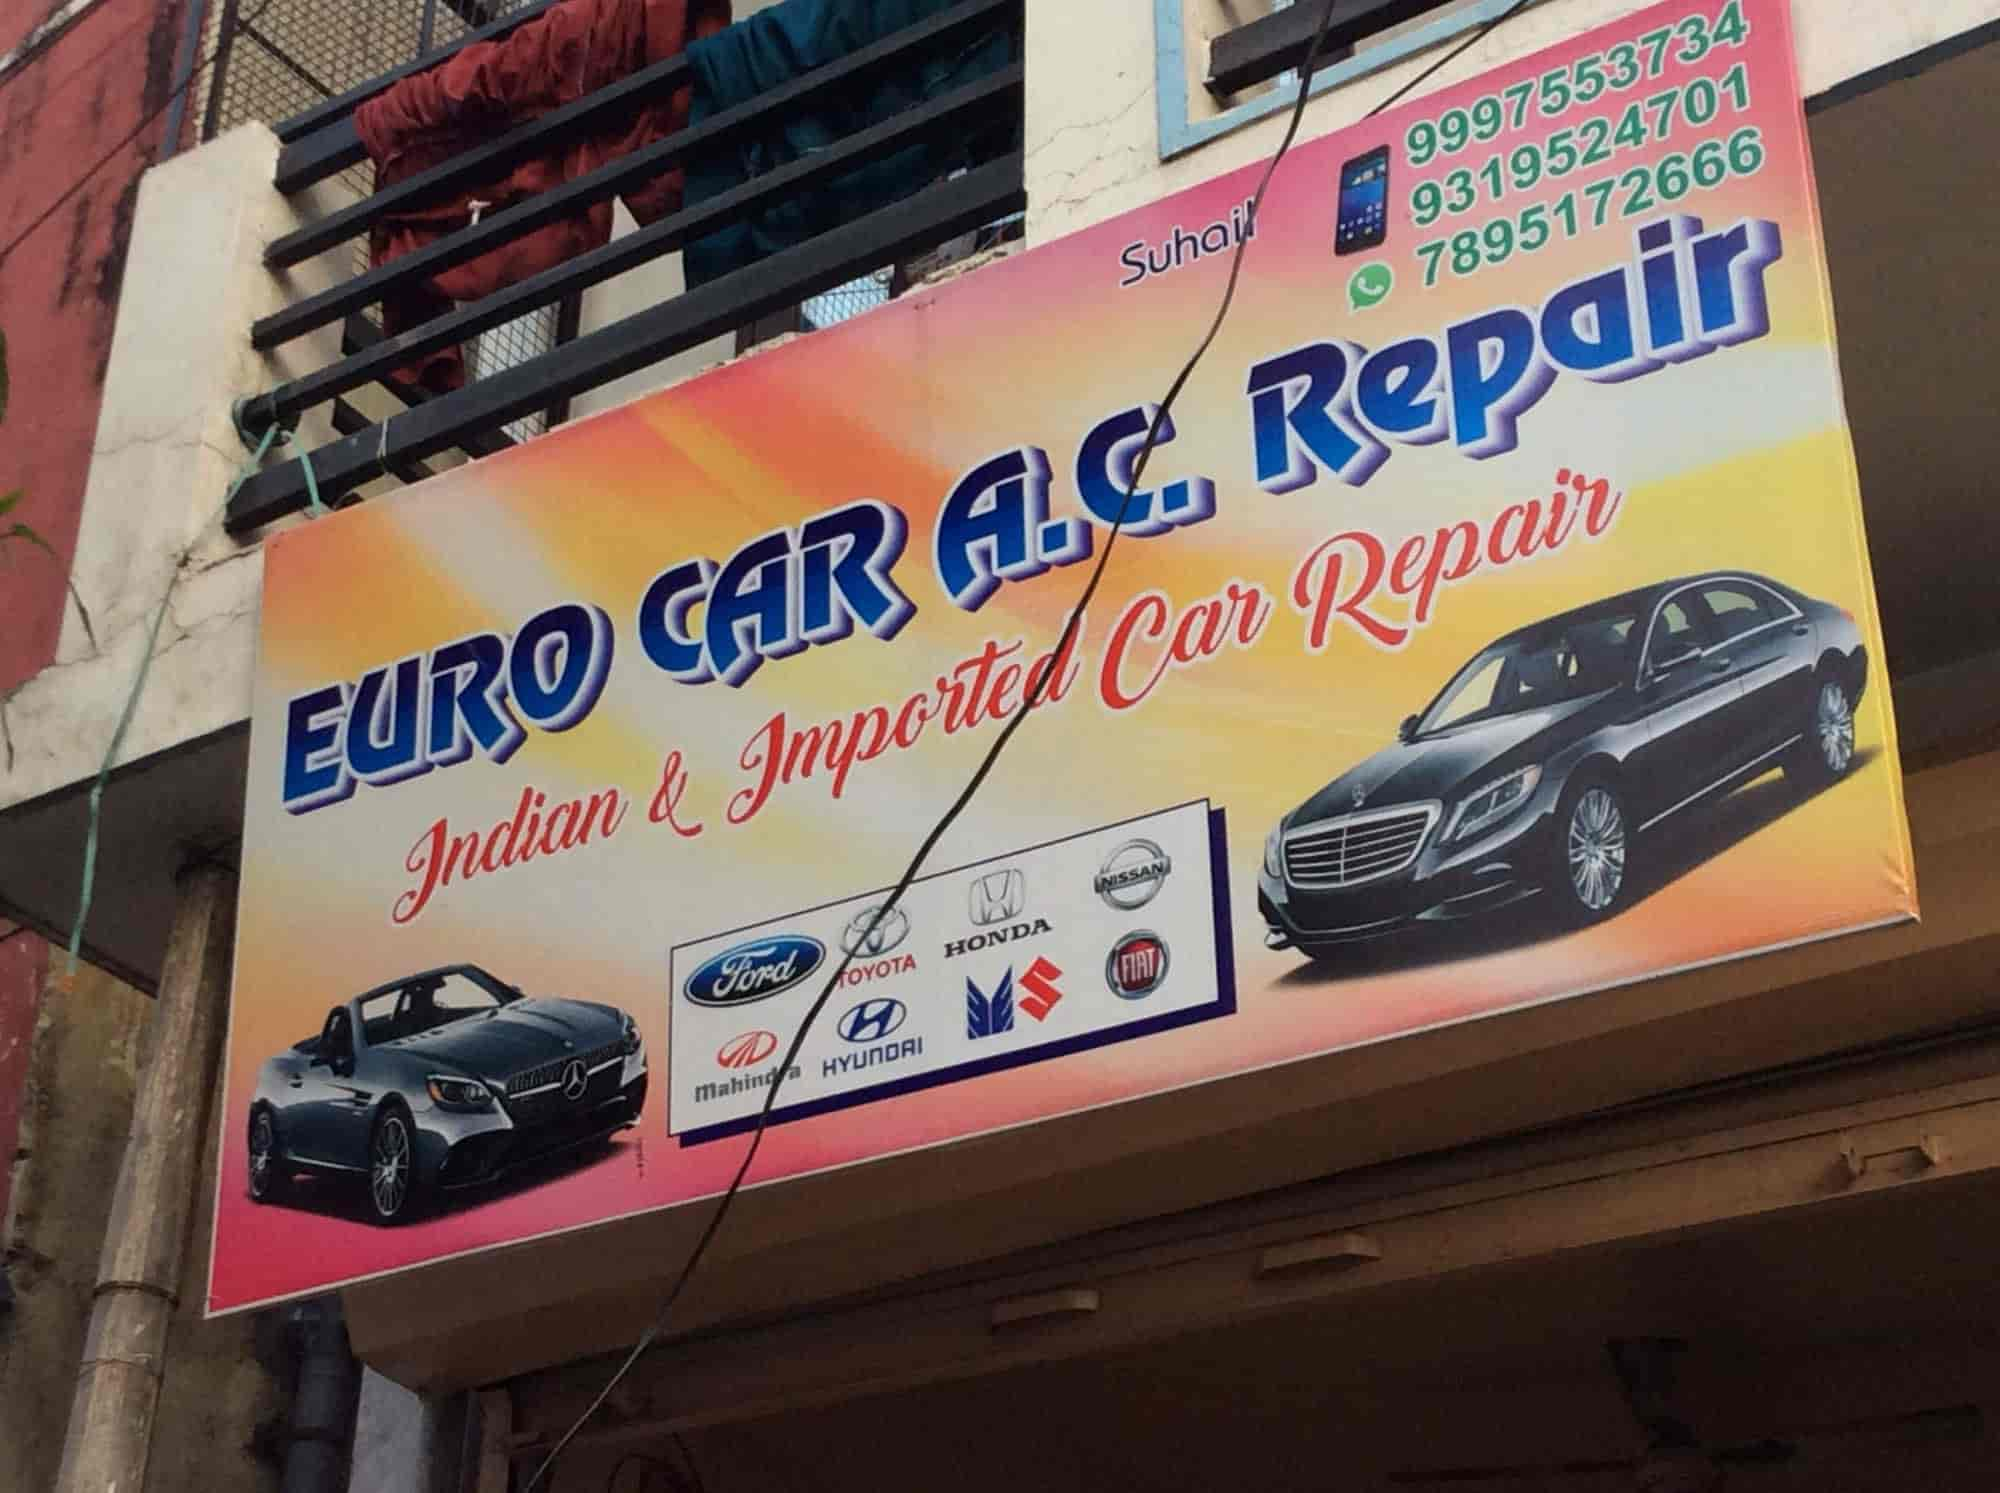 Euro Car Ac Reapair Service In Haridwar Photos Haridwar Pictures